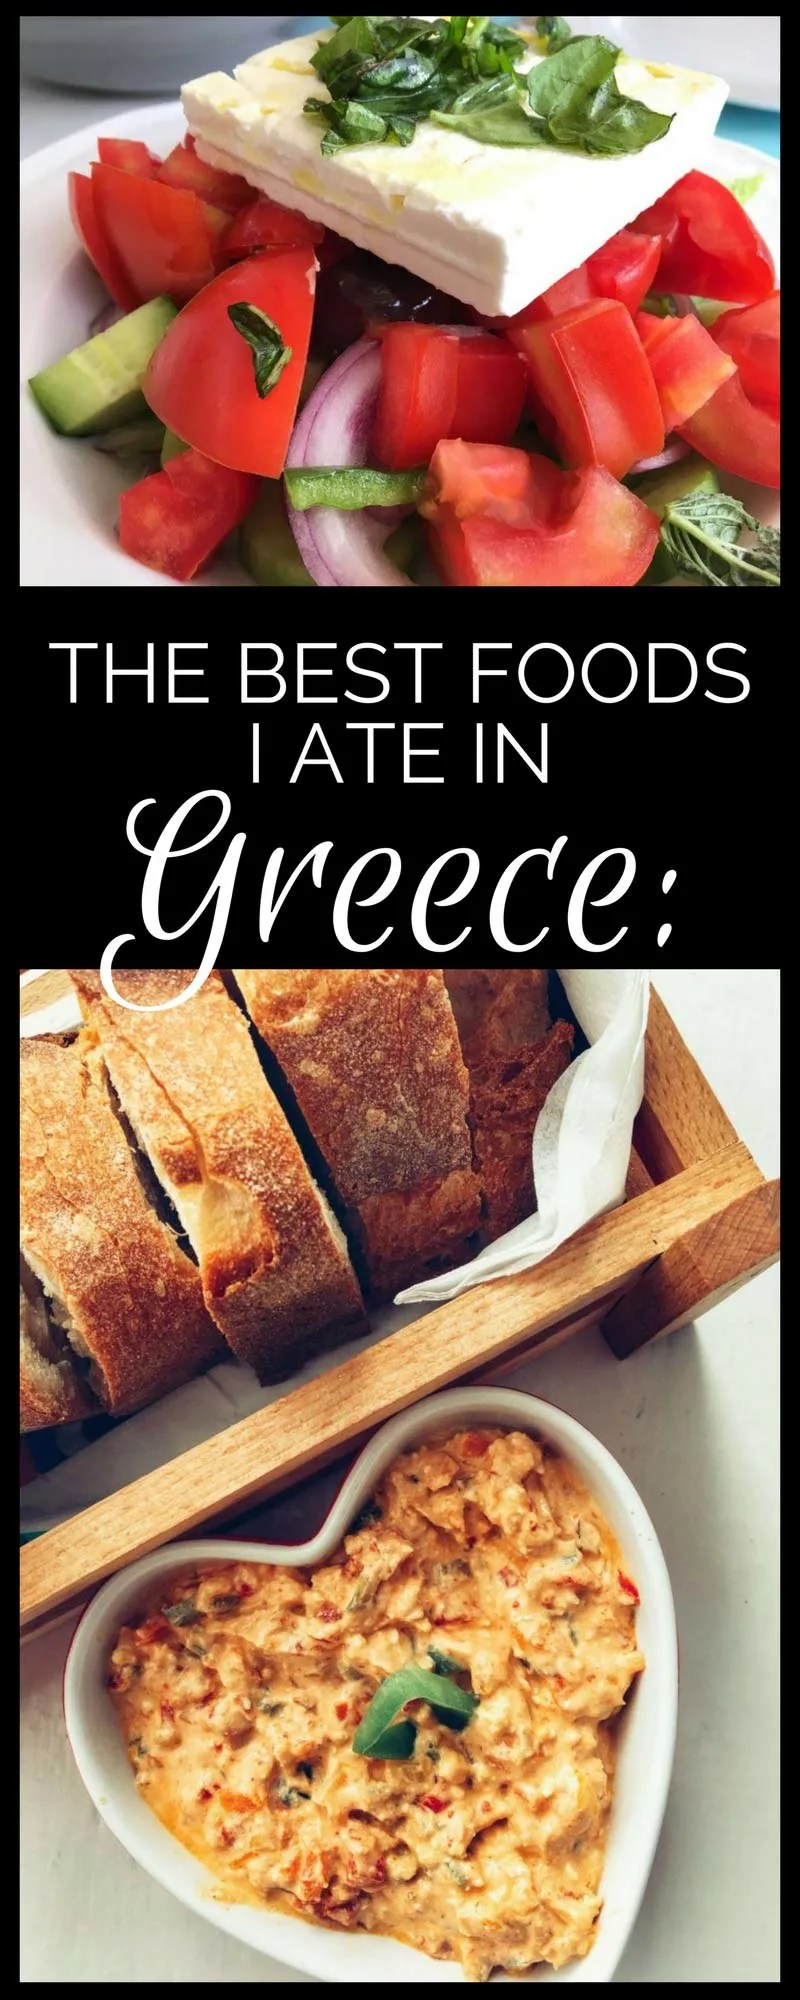 There is huge variety in Greek food. The majority of Greek dishes I tried were simple and made use of what's in season, but they were all done perfectly. The Greek diet is full of seafood, grilled meats, cheese, fresh vegetables, olive oil and savory pastries. In fact, Greece is considered to have one of the healthiest diets in the world.